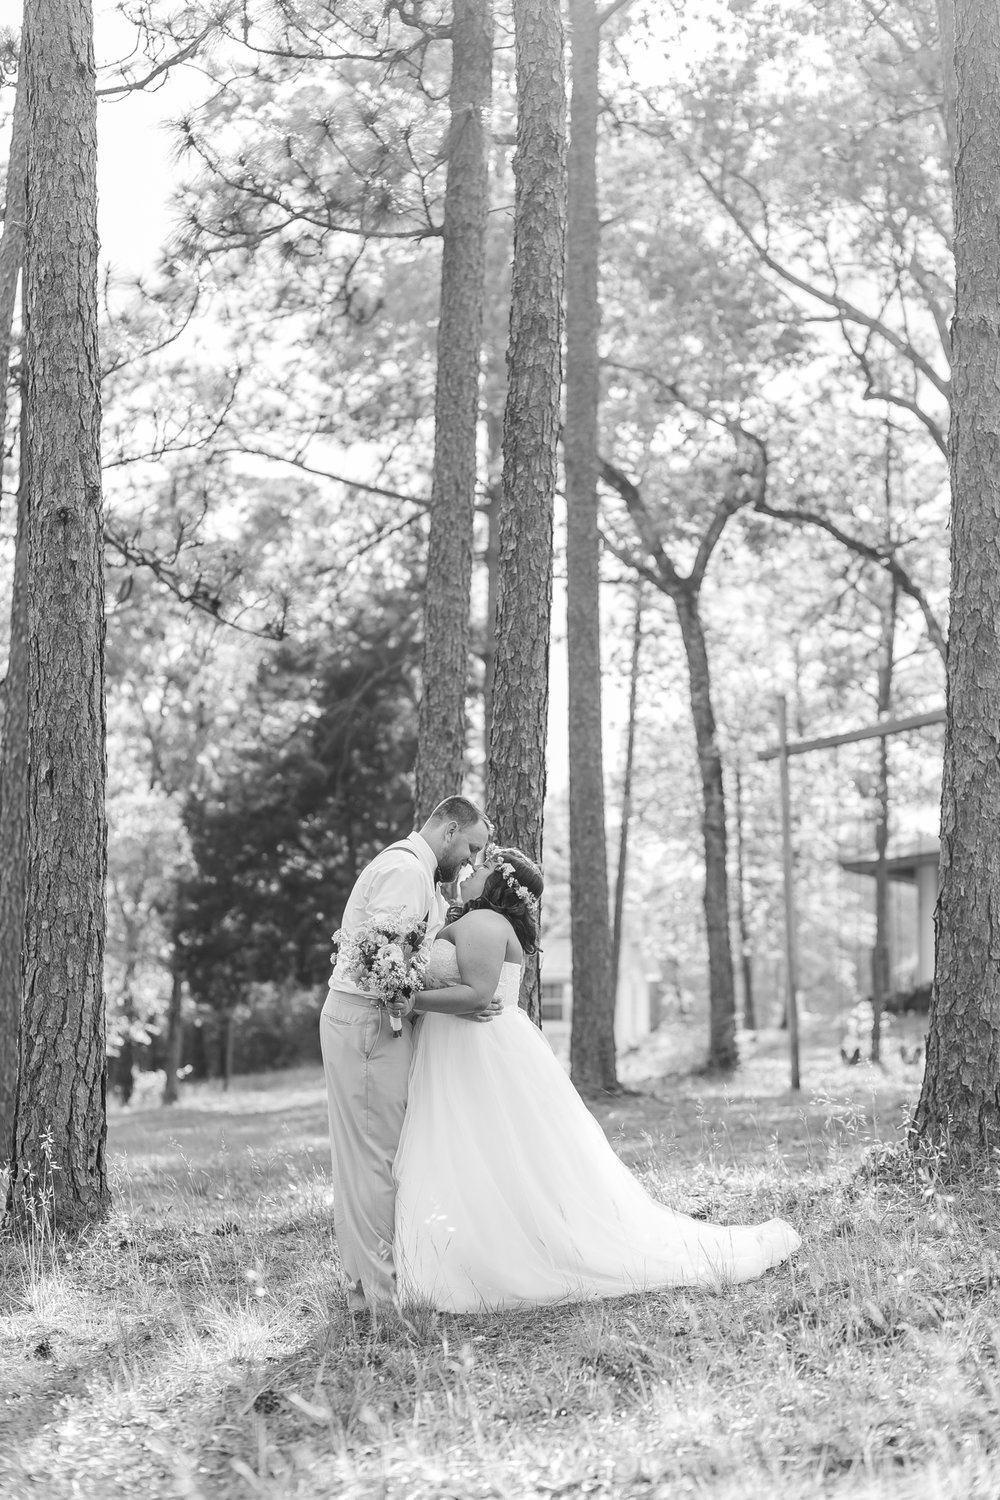 gabe&bev (410 of 627).jpg